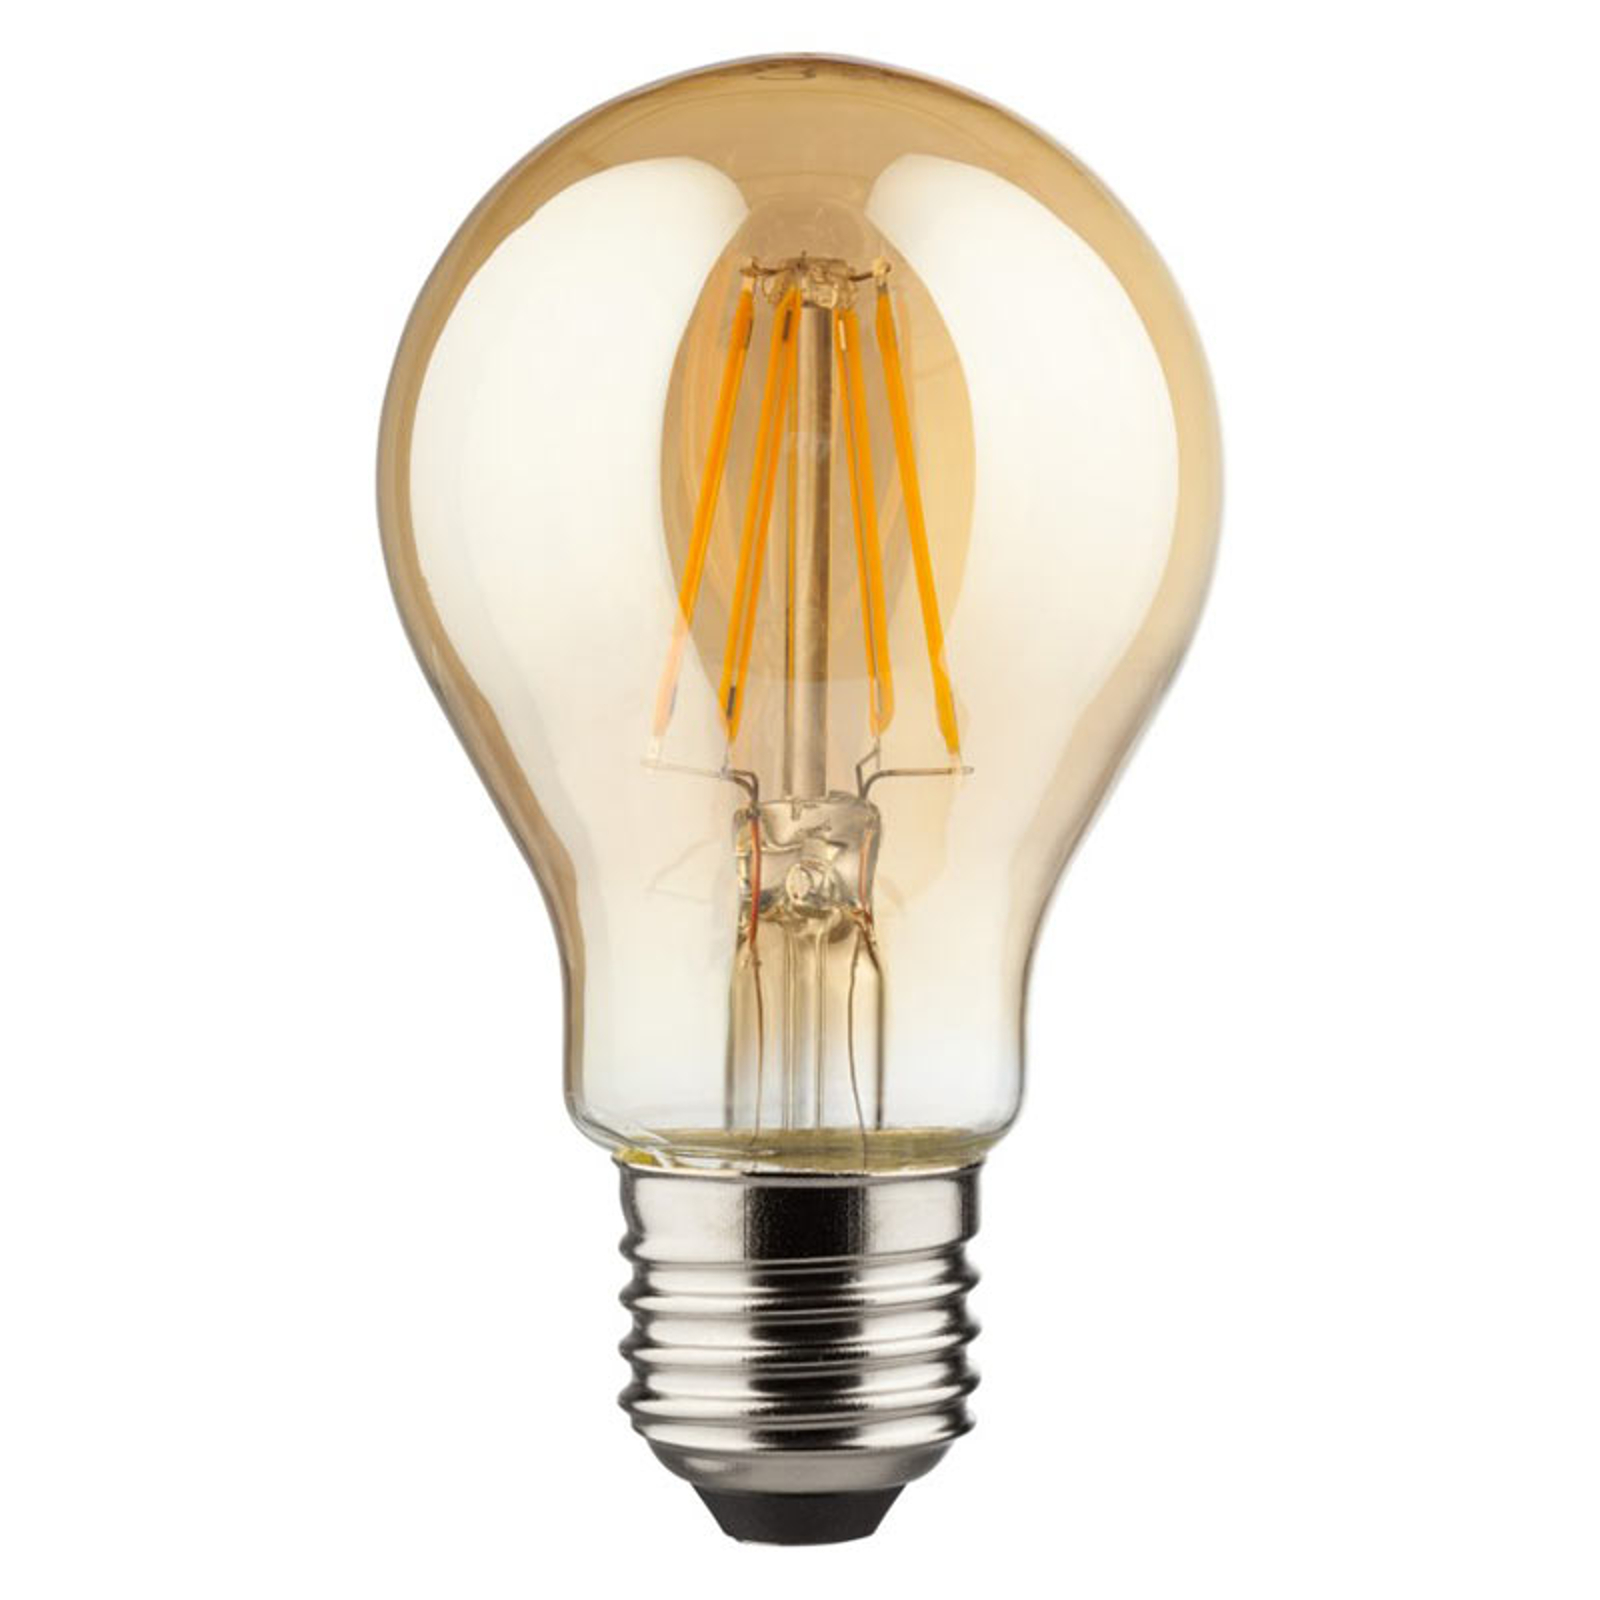 LED lamp E27 6,5 W 2.000K 400 lumen retro goud